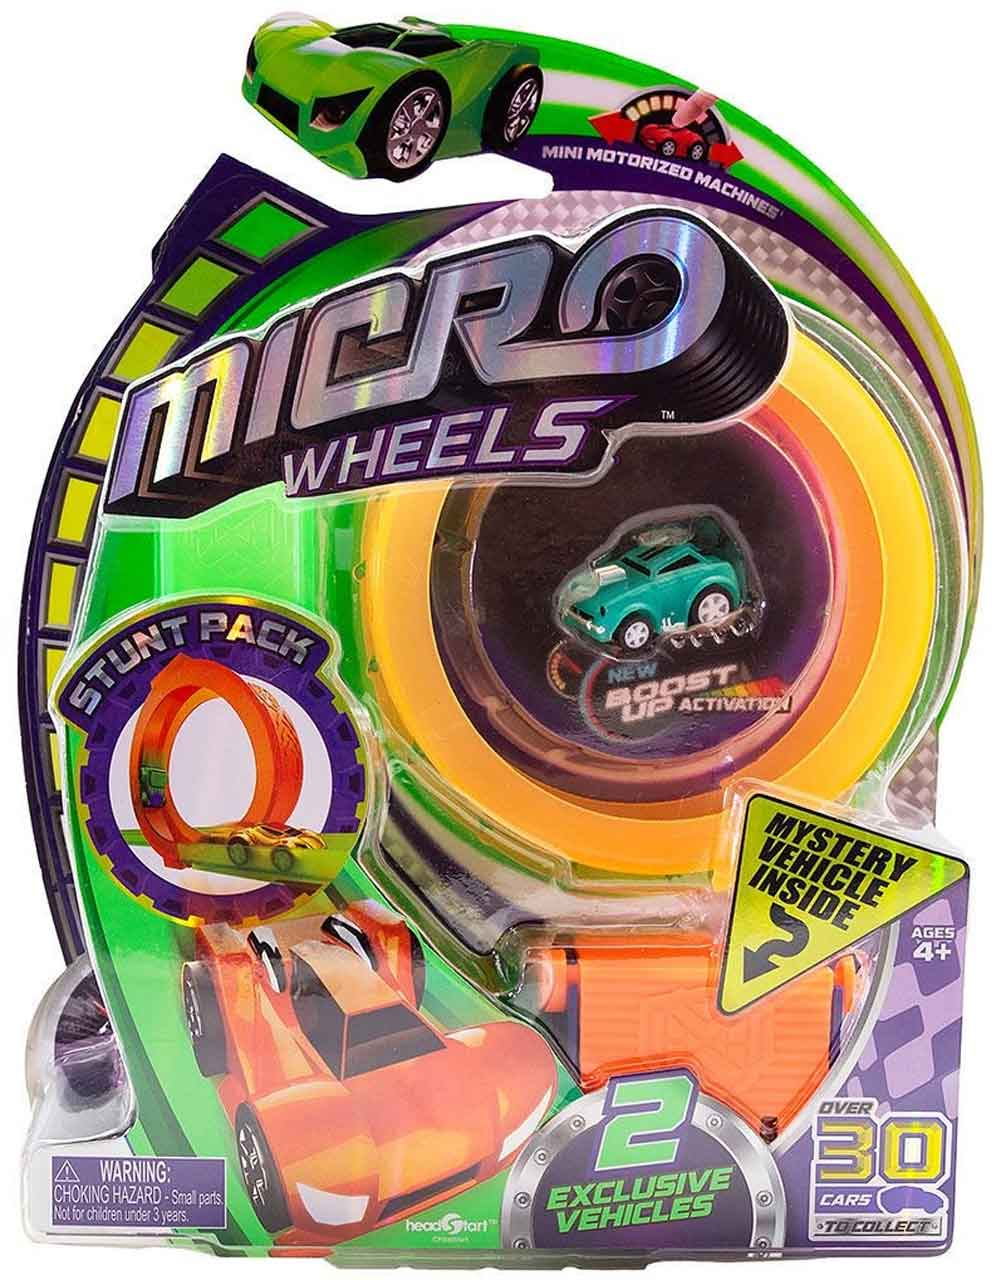 Micro Wheels Stunt Pack (Random Colors) orange track